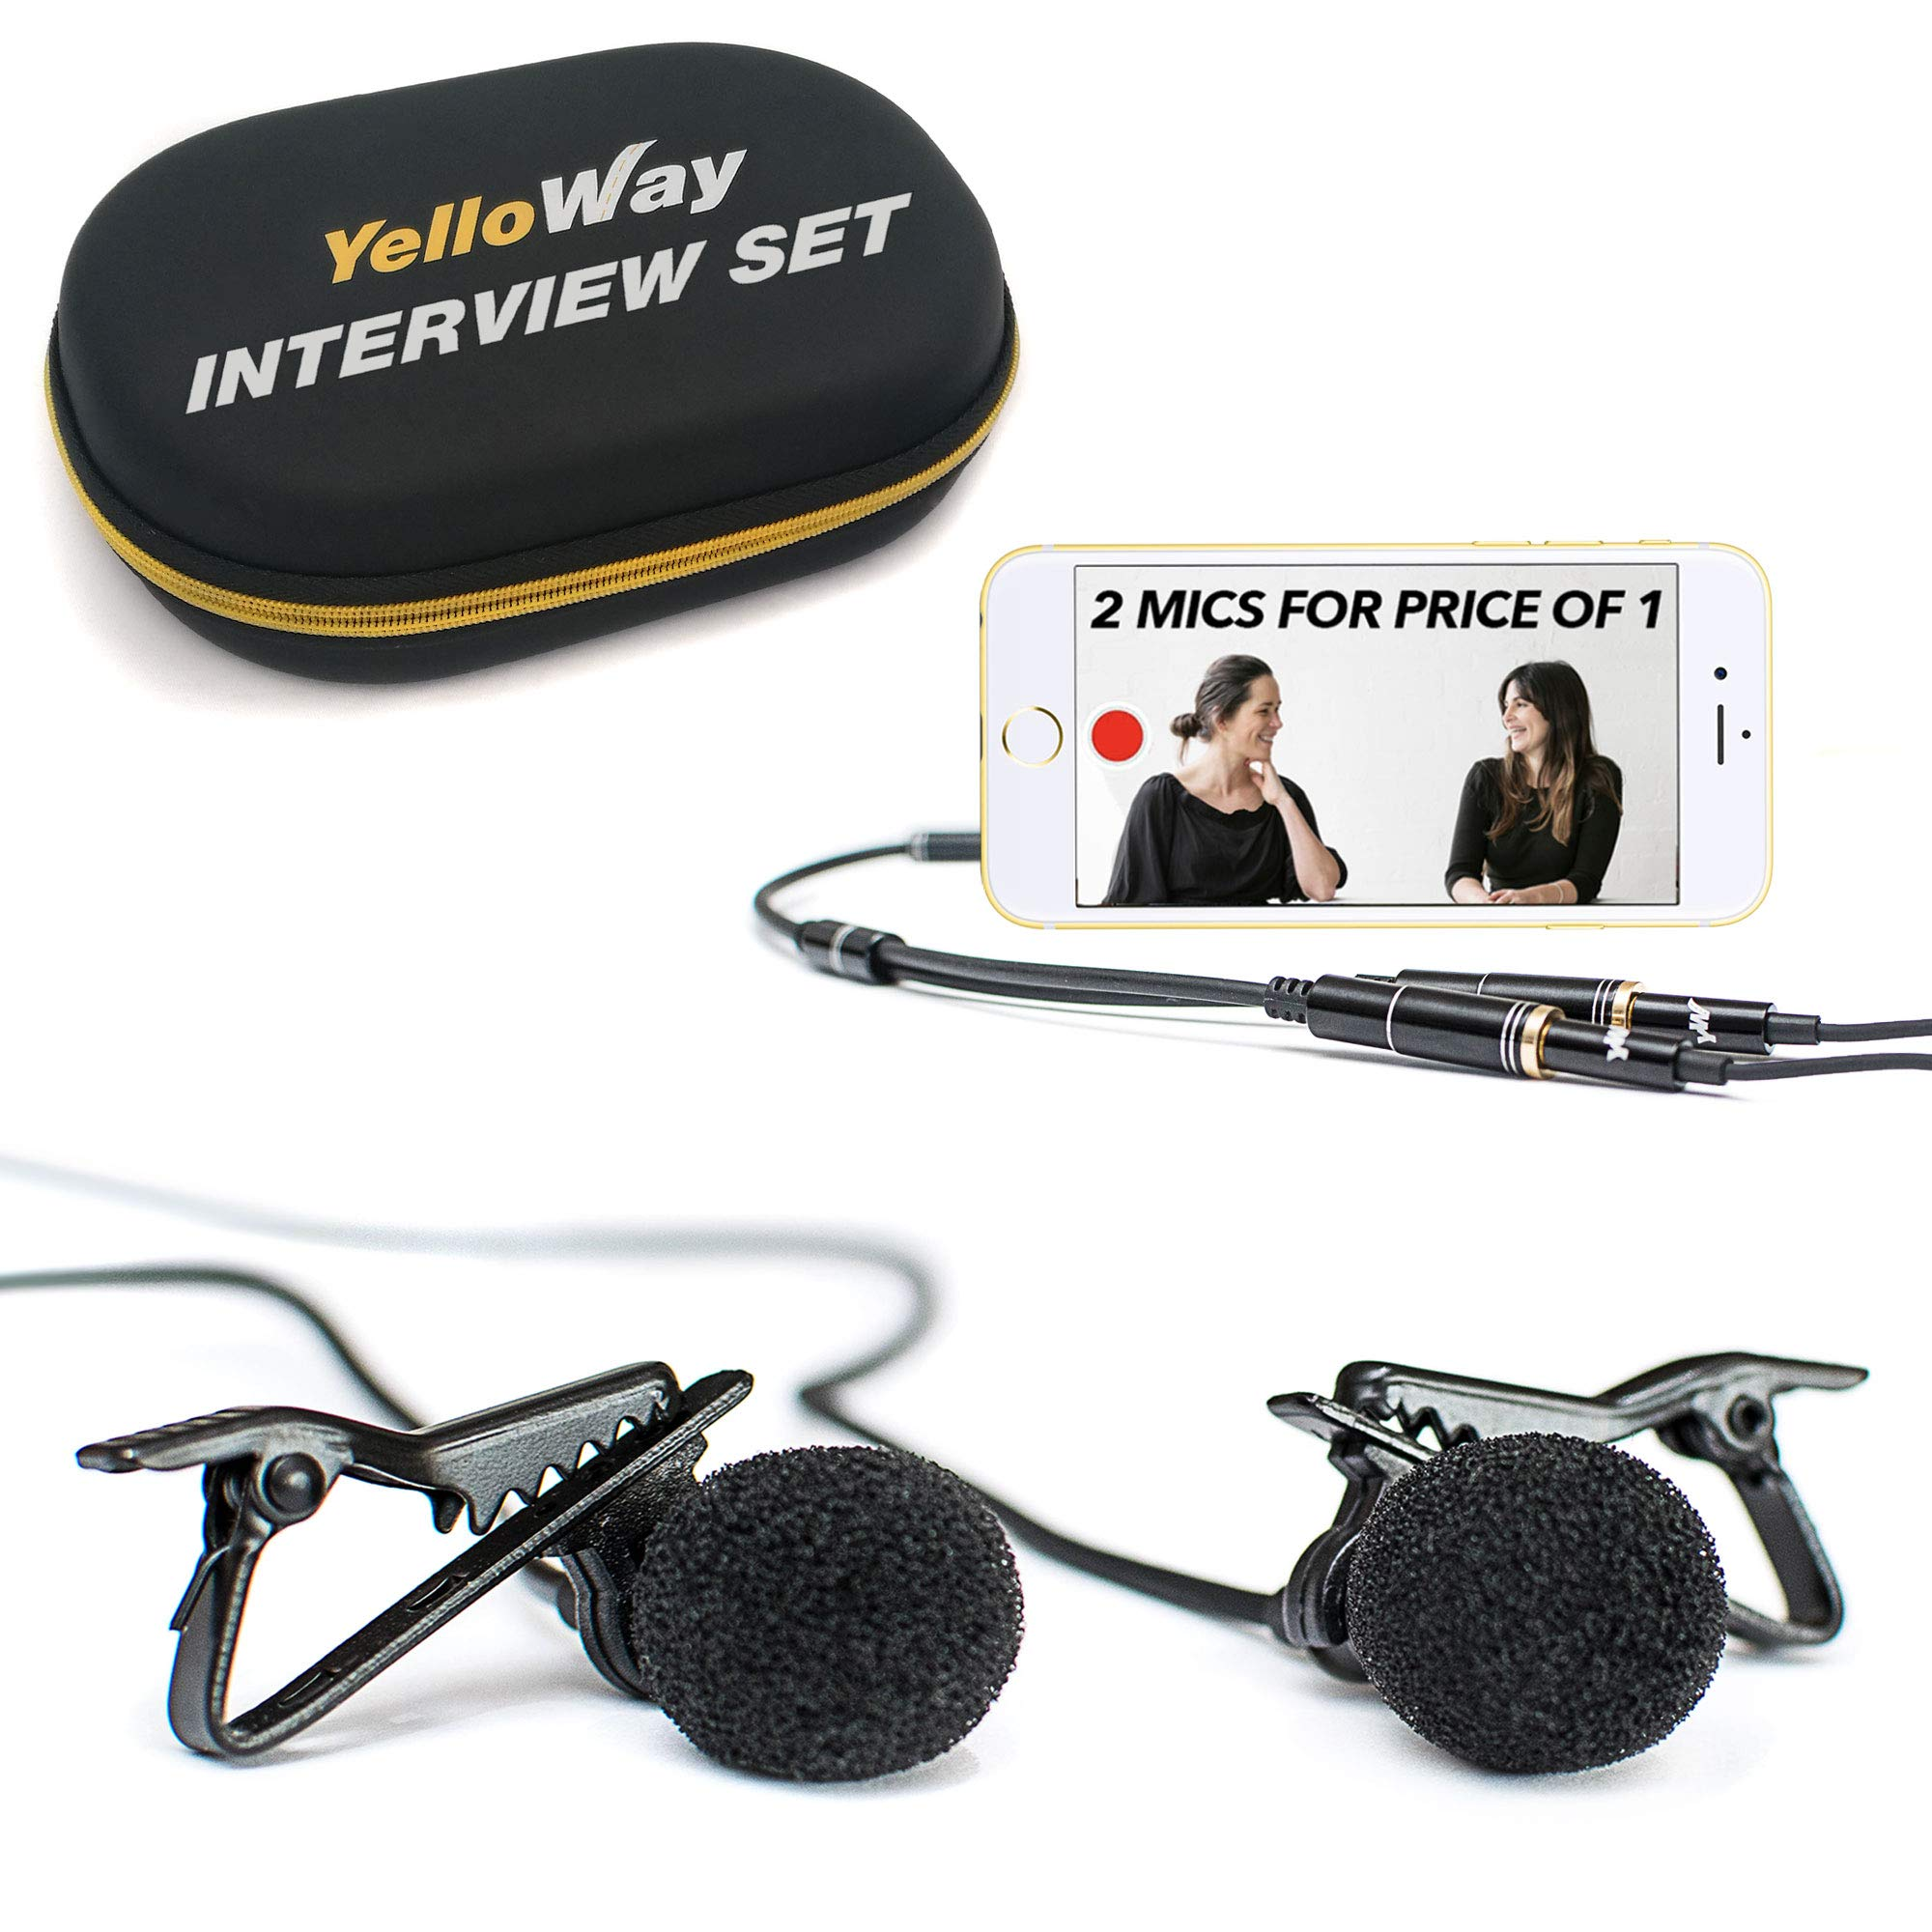 Dual Lavalier Lapel Microphone - for Interviews - 2 Persons Podcast Microphone Pack - 2 Conference Room Omnidirectional Microphone Set